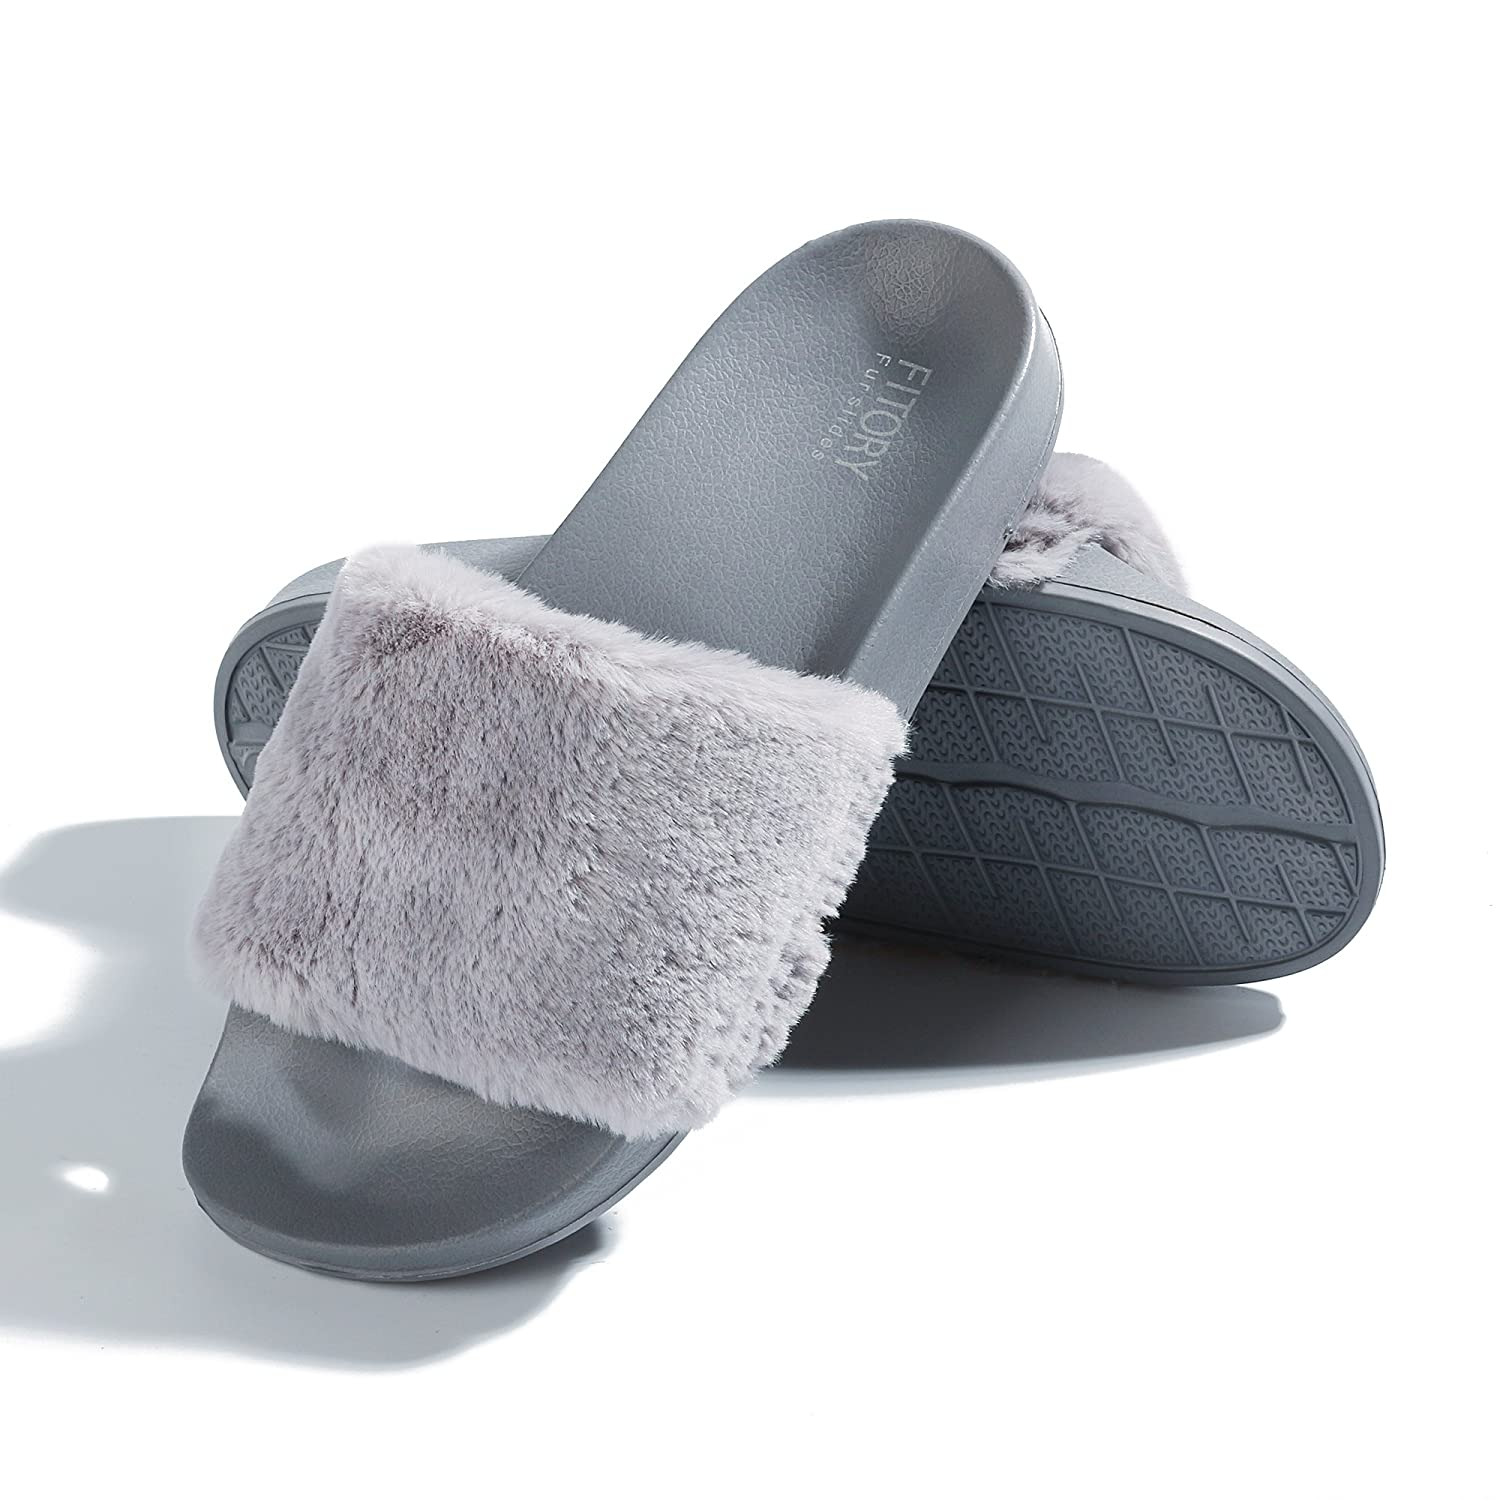 55064d133 Clothing, Shoes & Jewelry FITORY Women Slides Slippers,Faux Fur Slide Slip  On Flats Sandals with ...